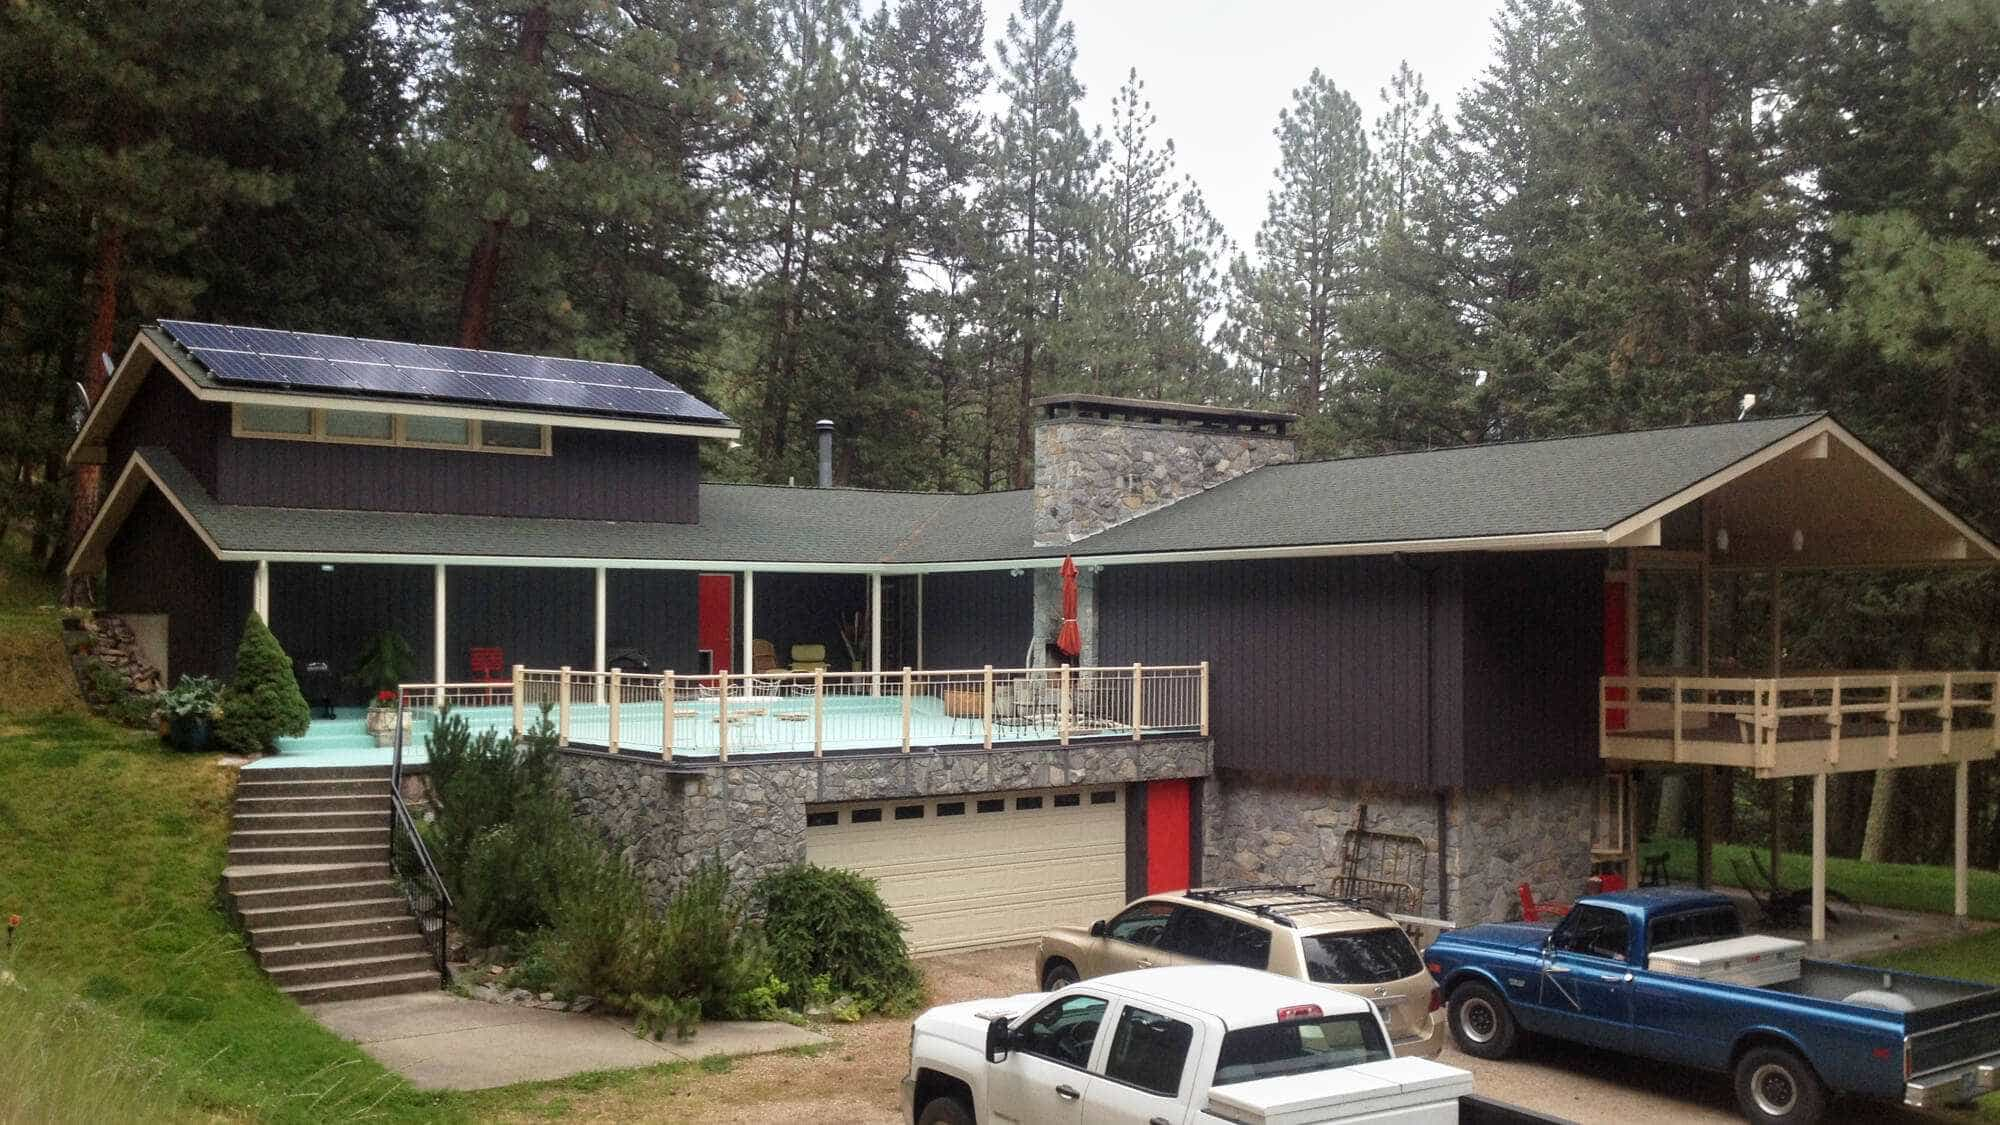 Solar Power House at Pattee Canyon